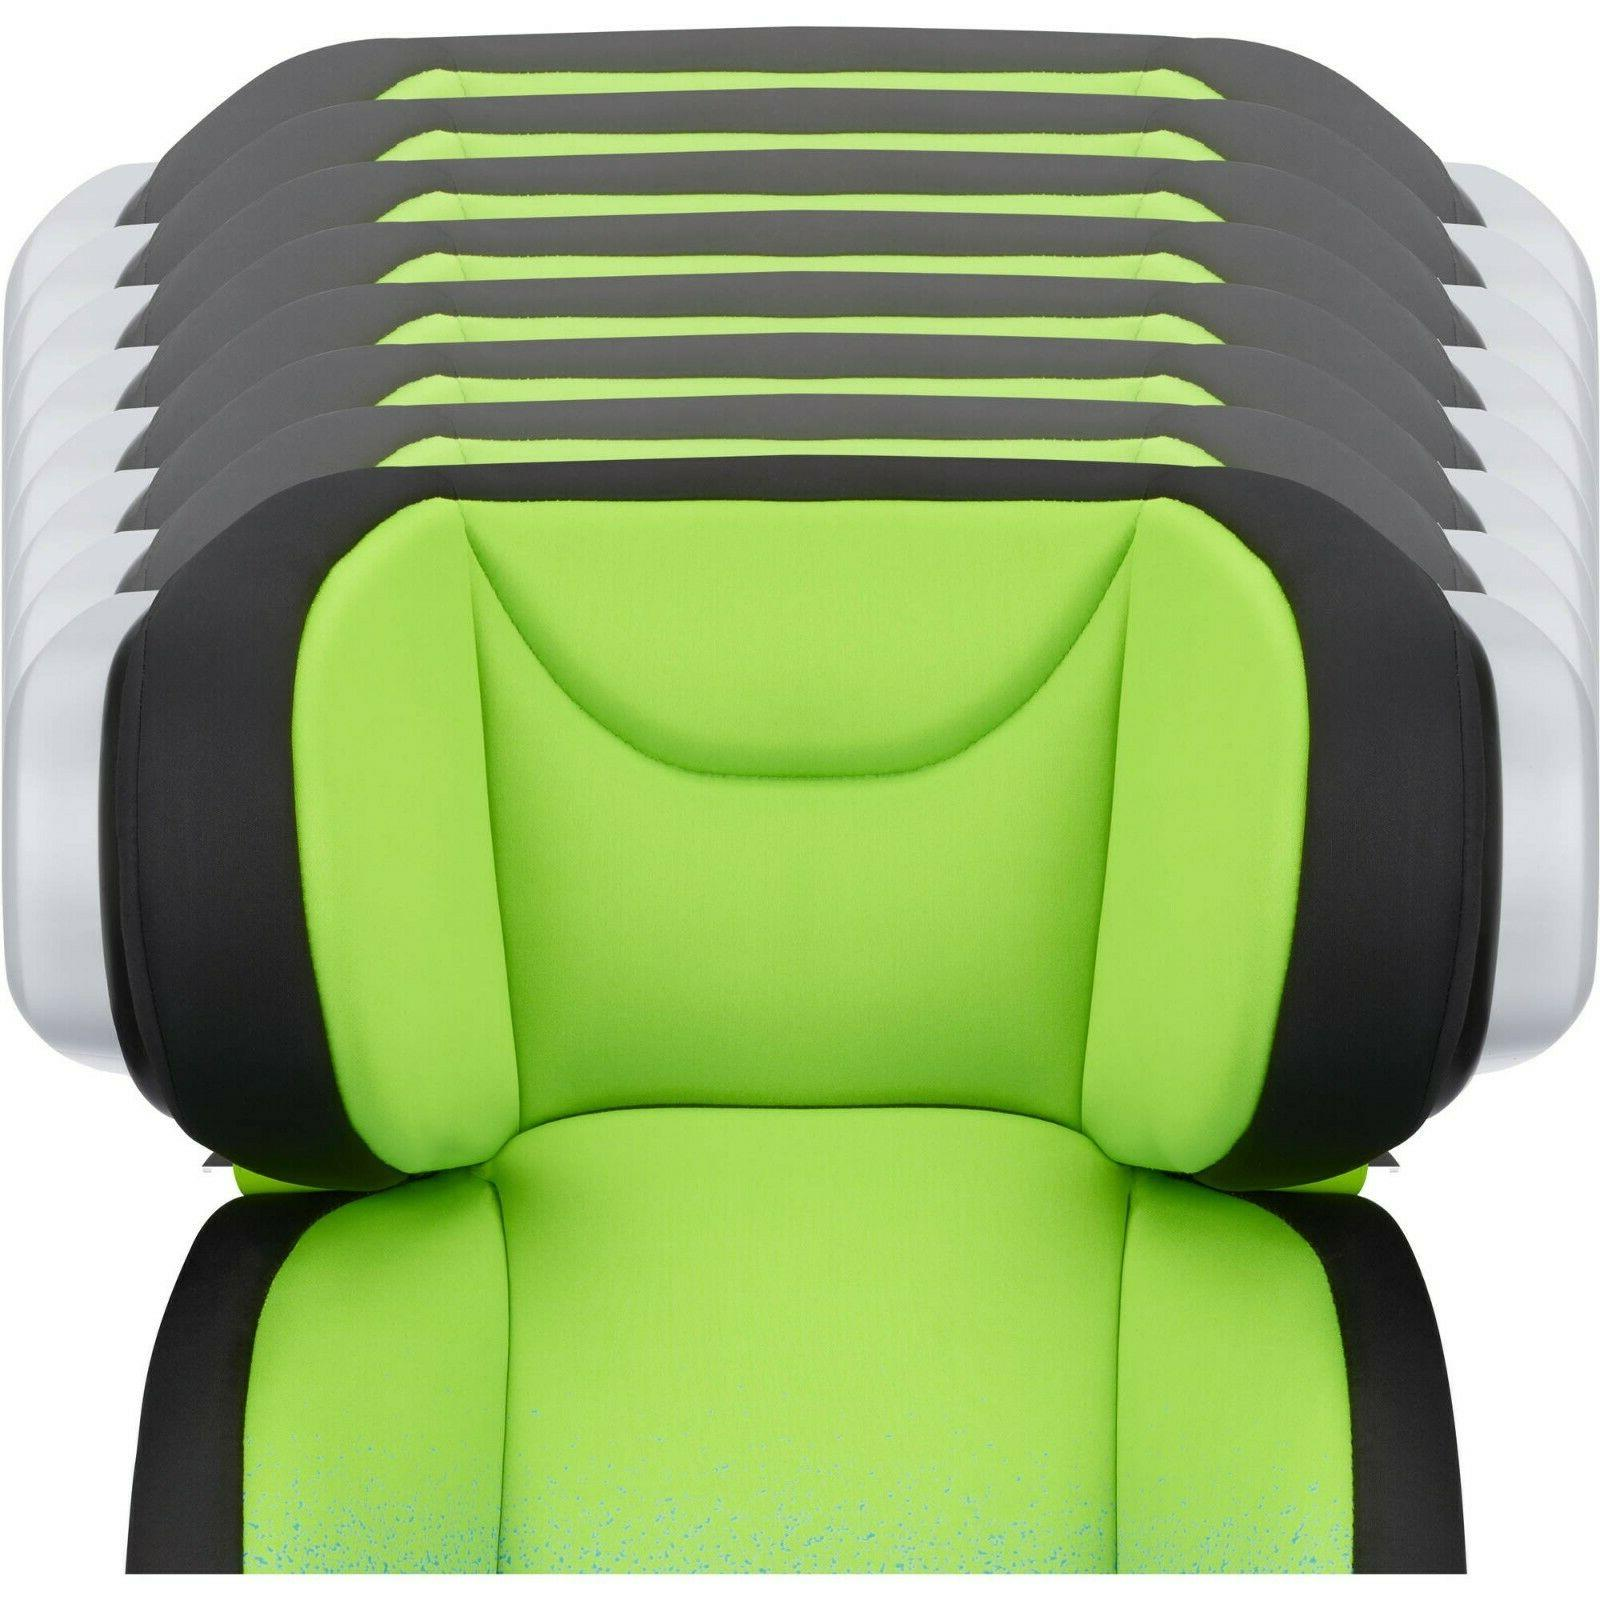 Evenflo Booster Seat, Seascape